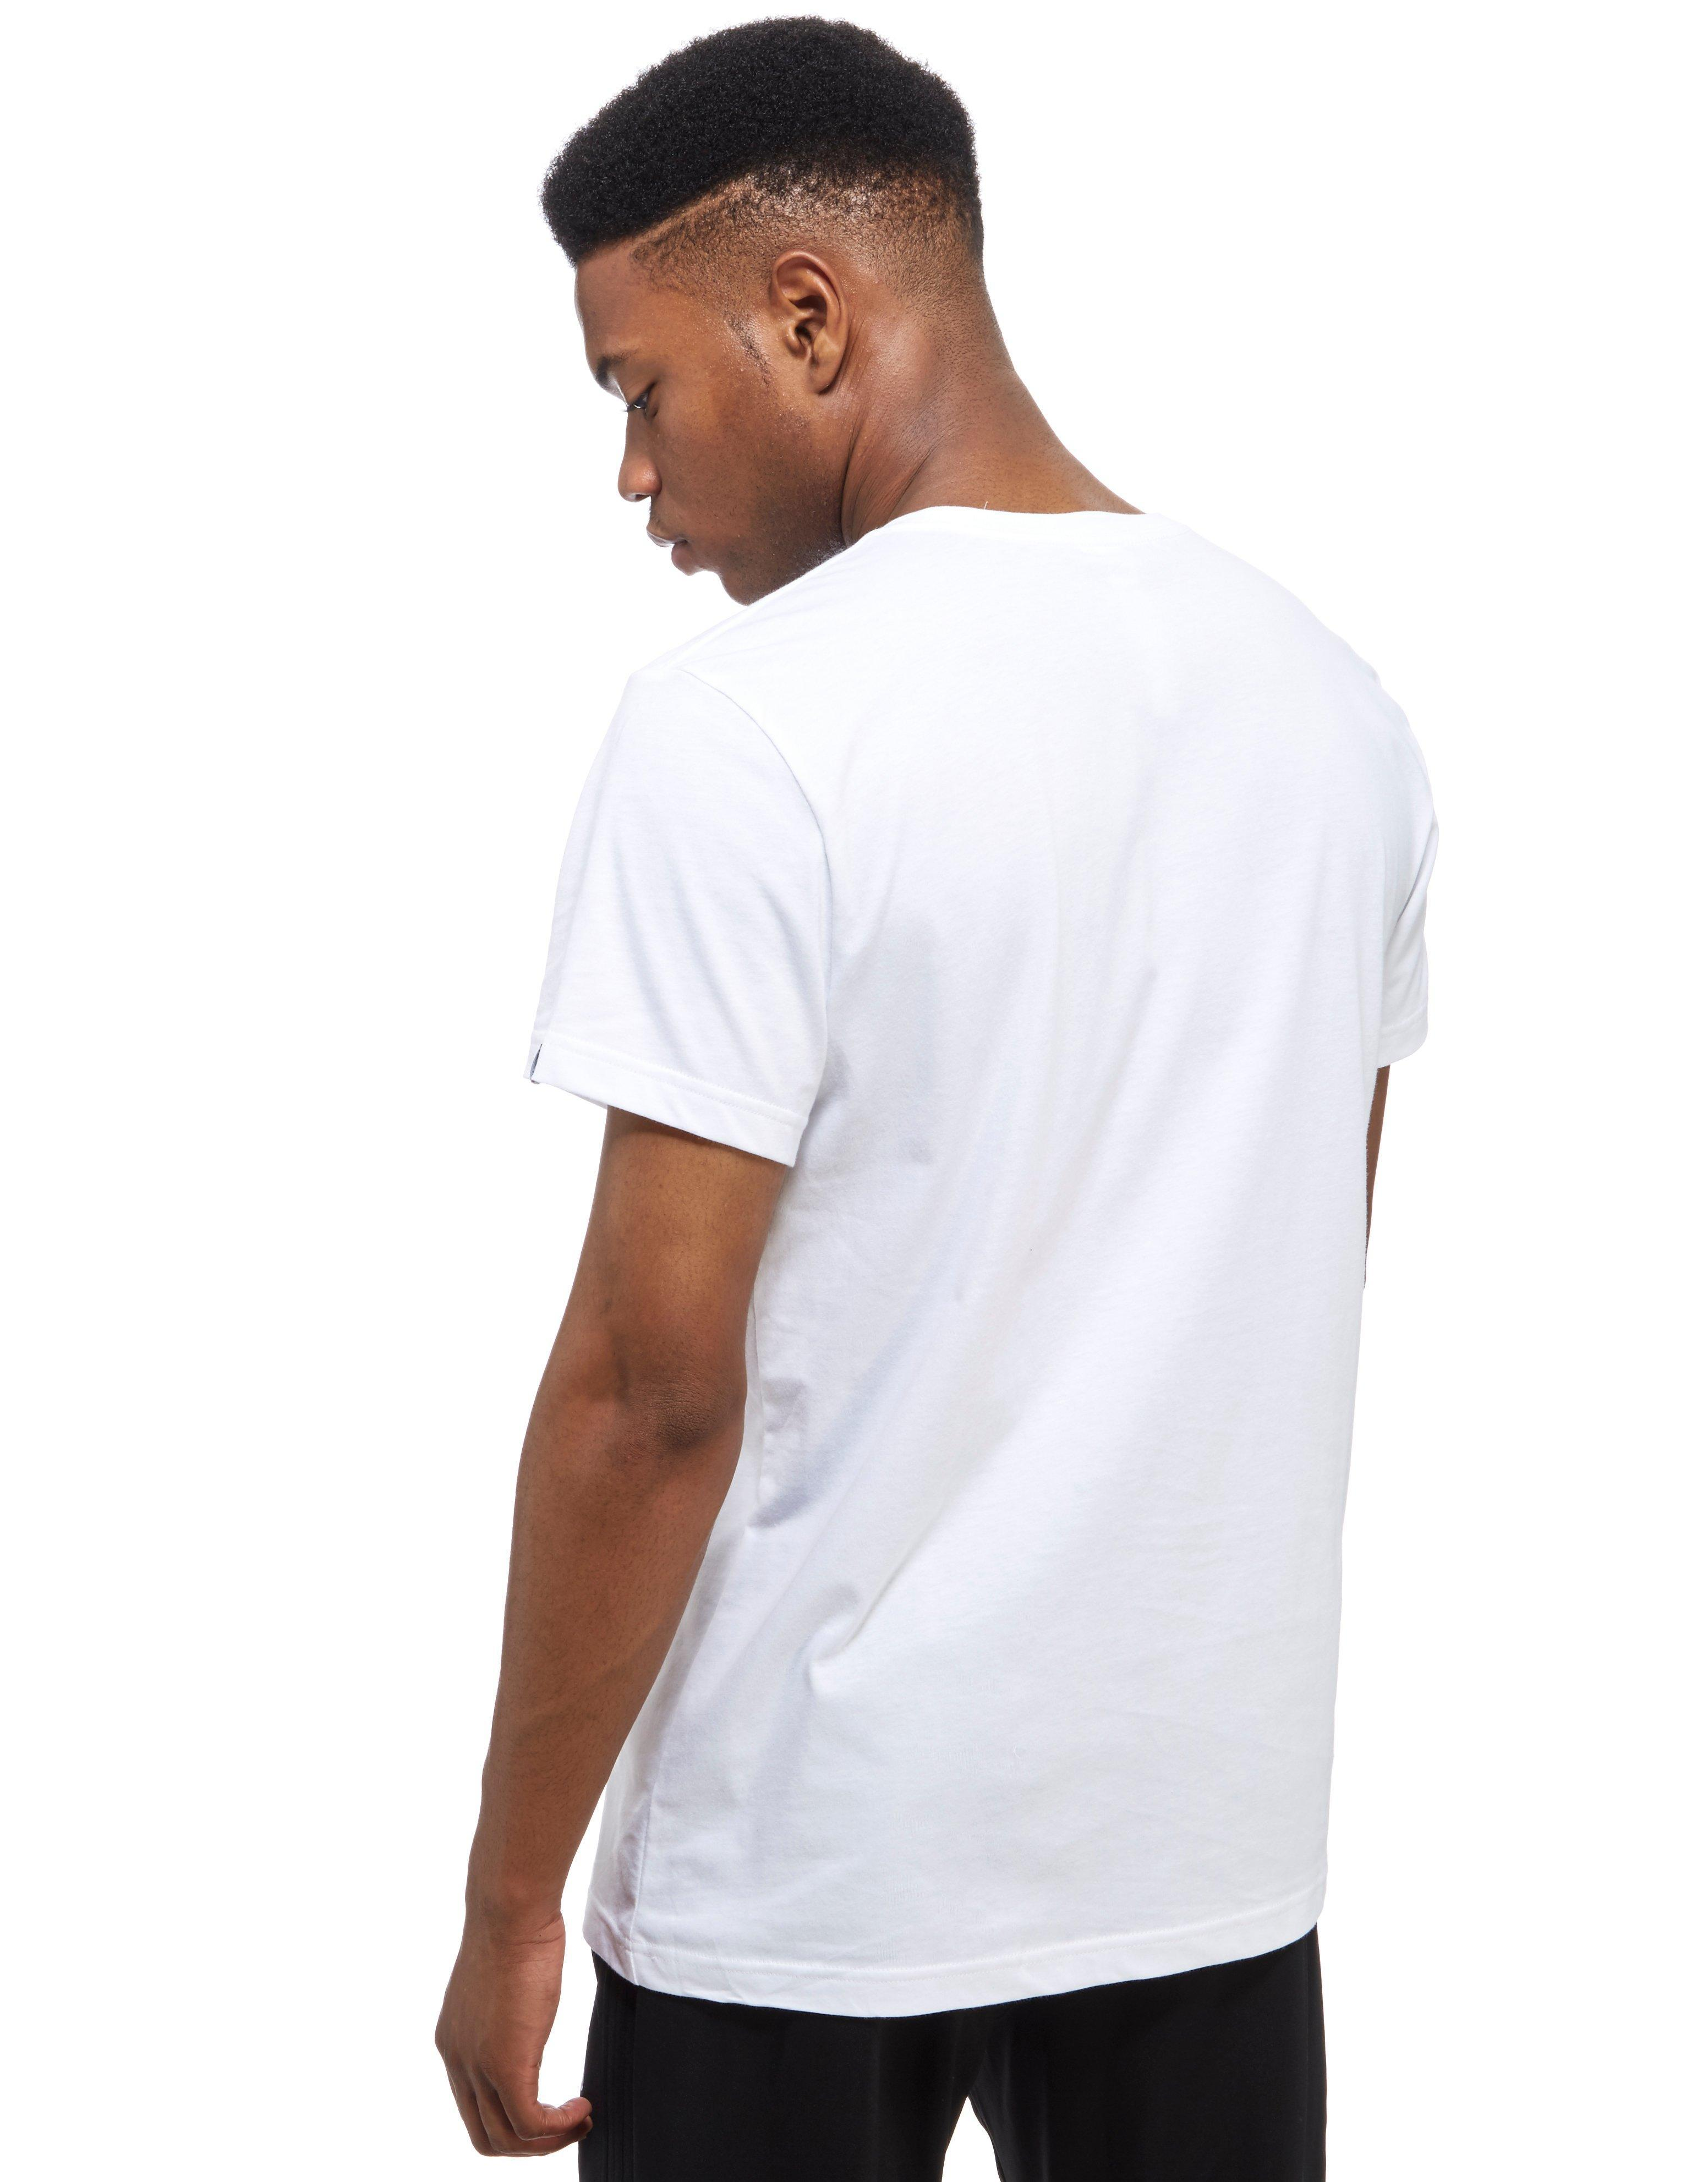 lyst adidas 3 lines bos t shirt in white for men. Black Bedroom Furniture Sets. Home Design Ideas